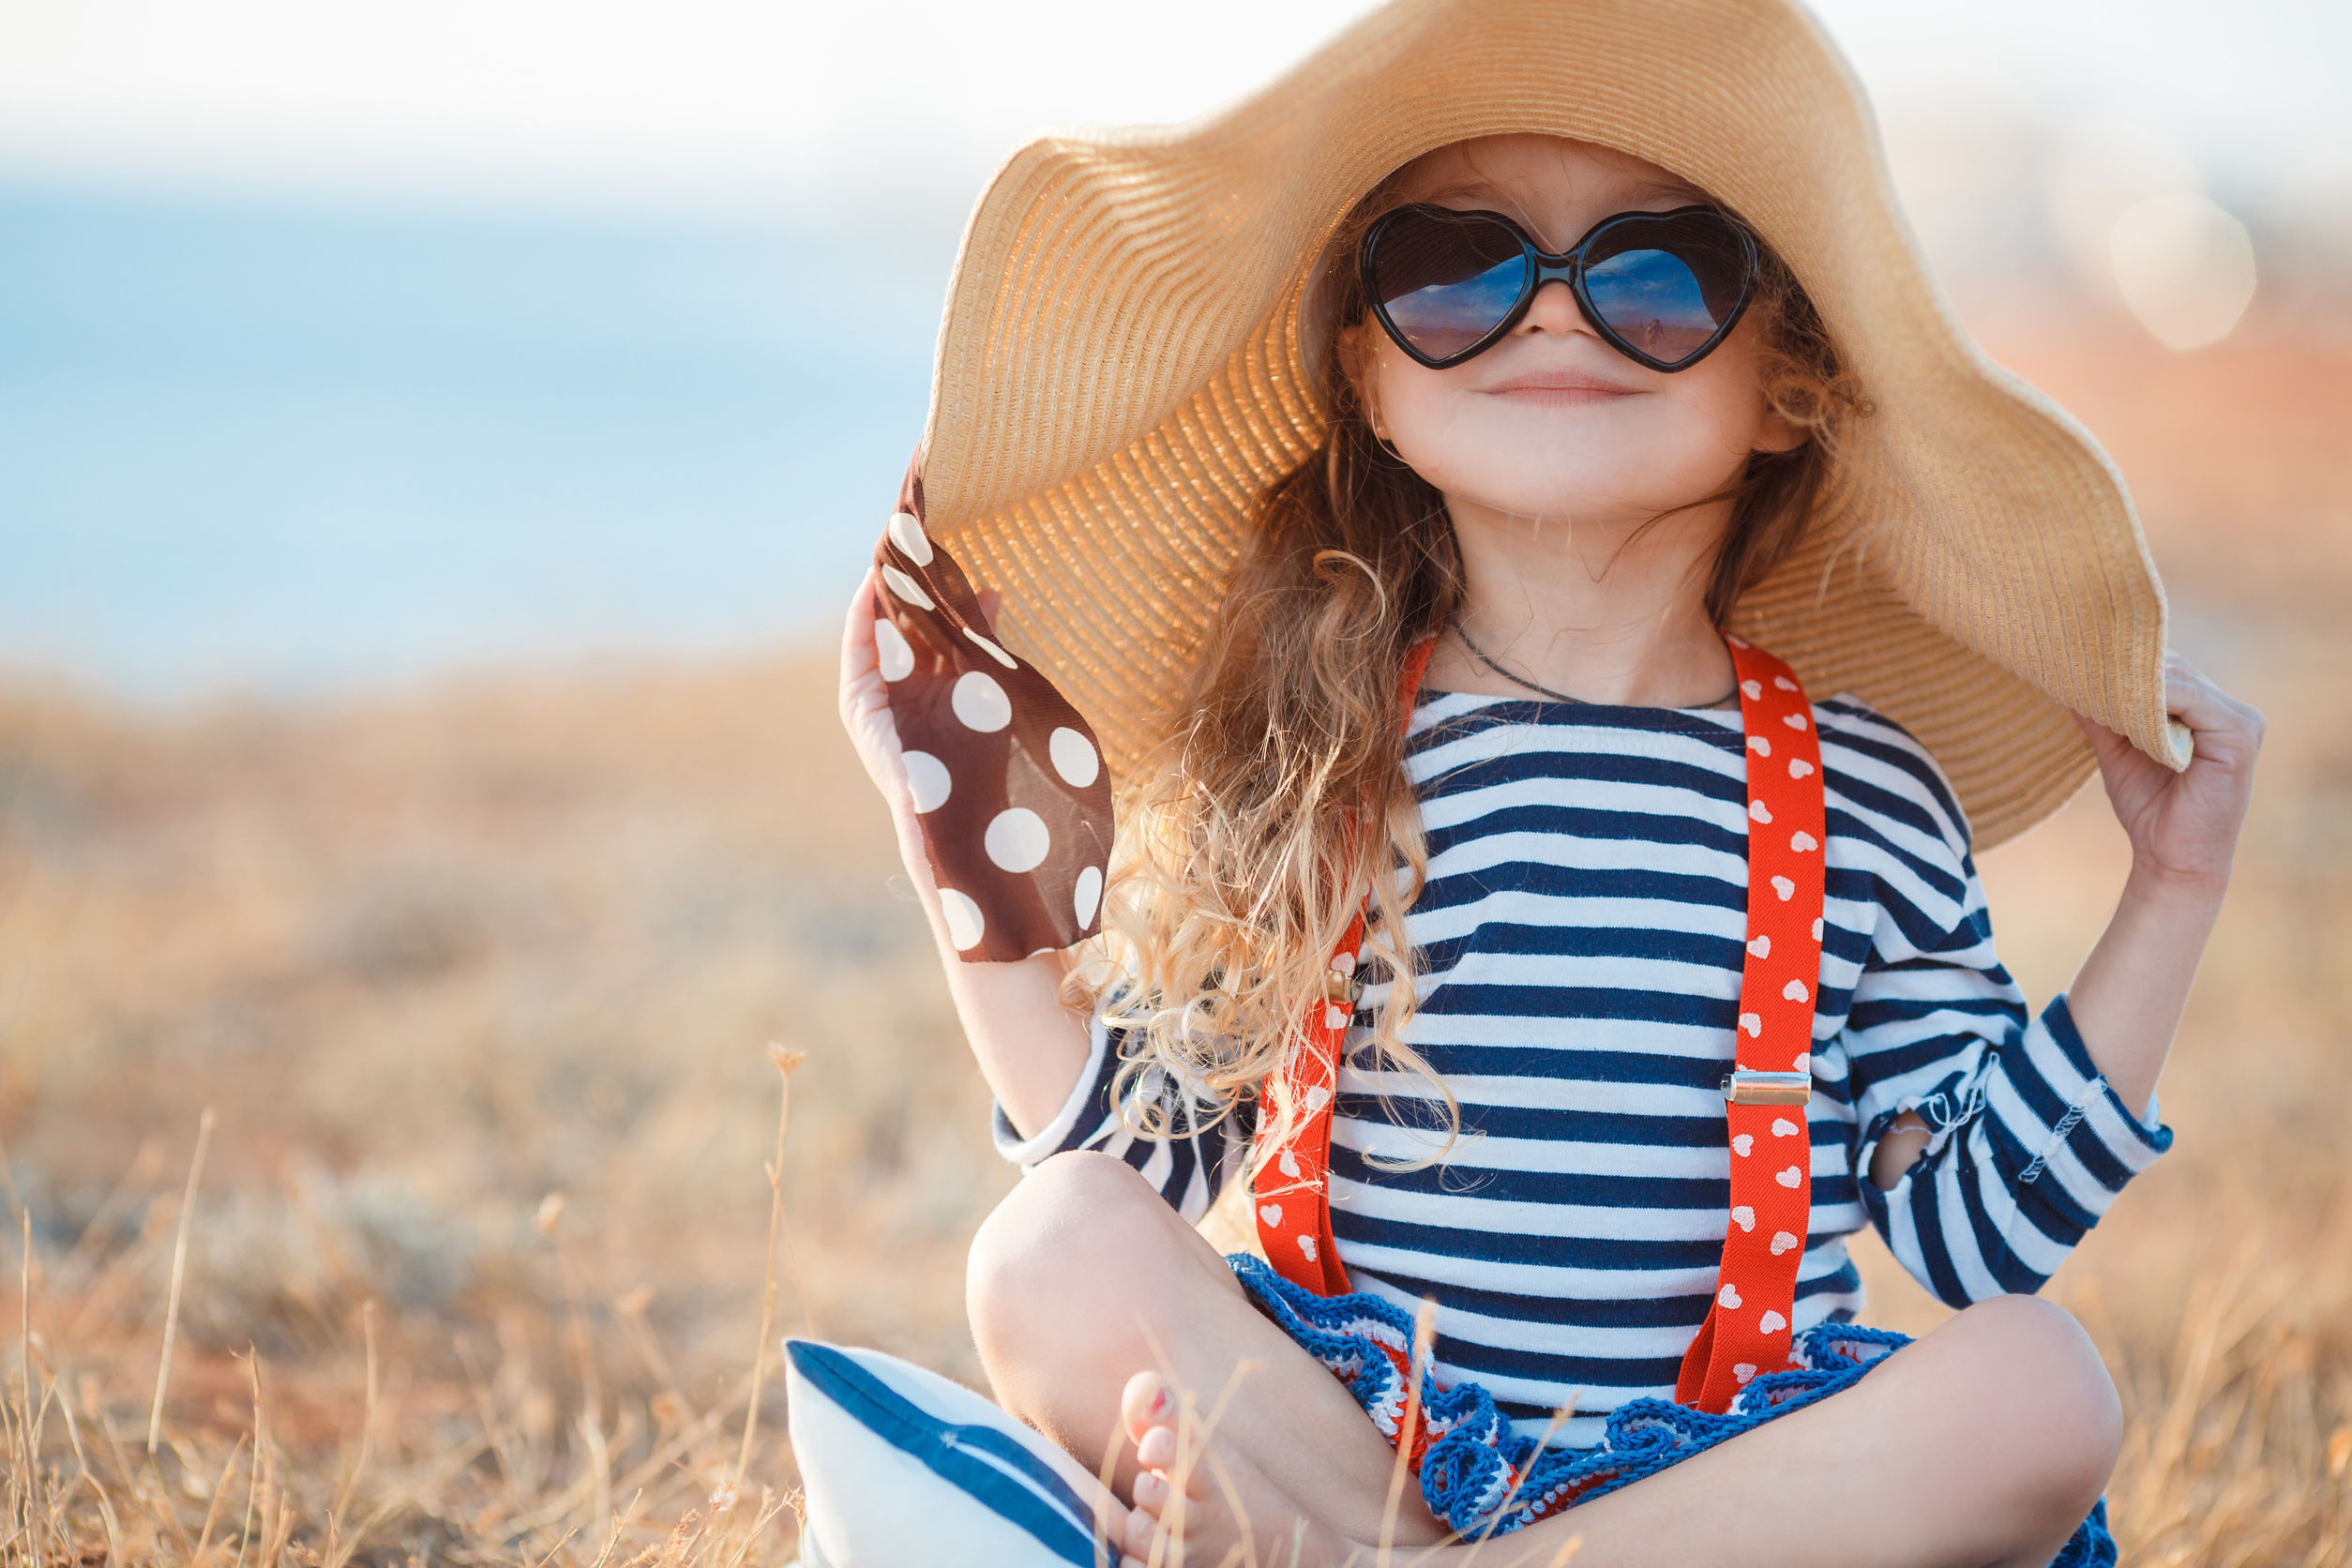 45459344 - happy little girl in a large hat, beautiful young lady, a brunette with long curly hair, dressed in a striped sailor shirt and red suspenders, wearing dark sunglasses, sitting on a rocky beach in a big straw hat.